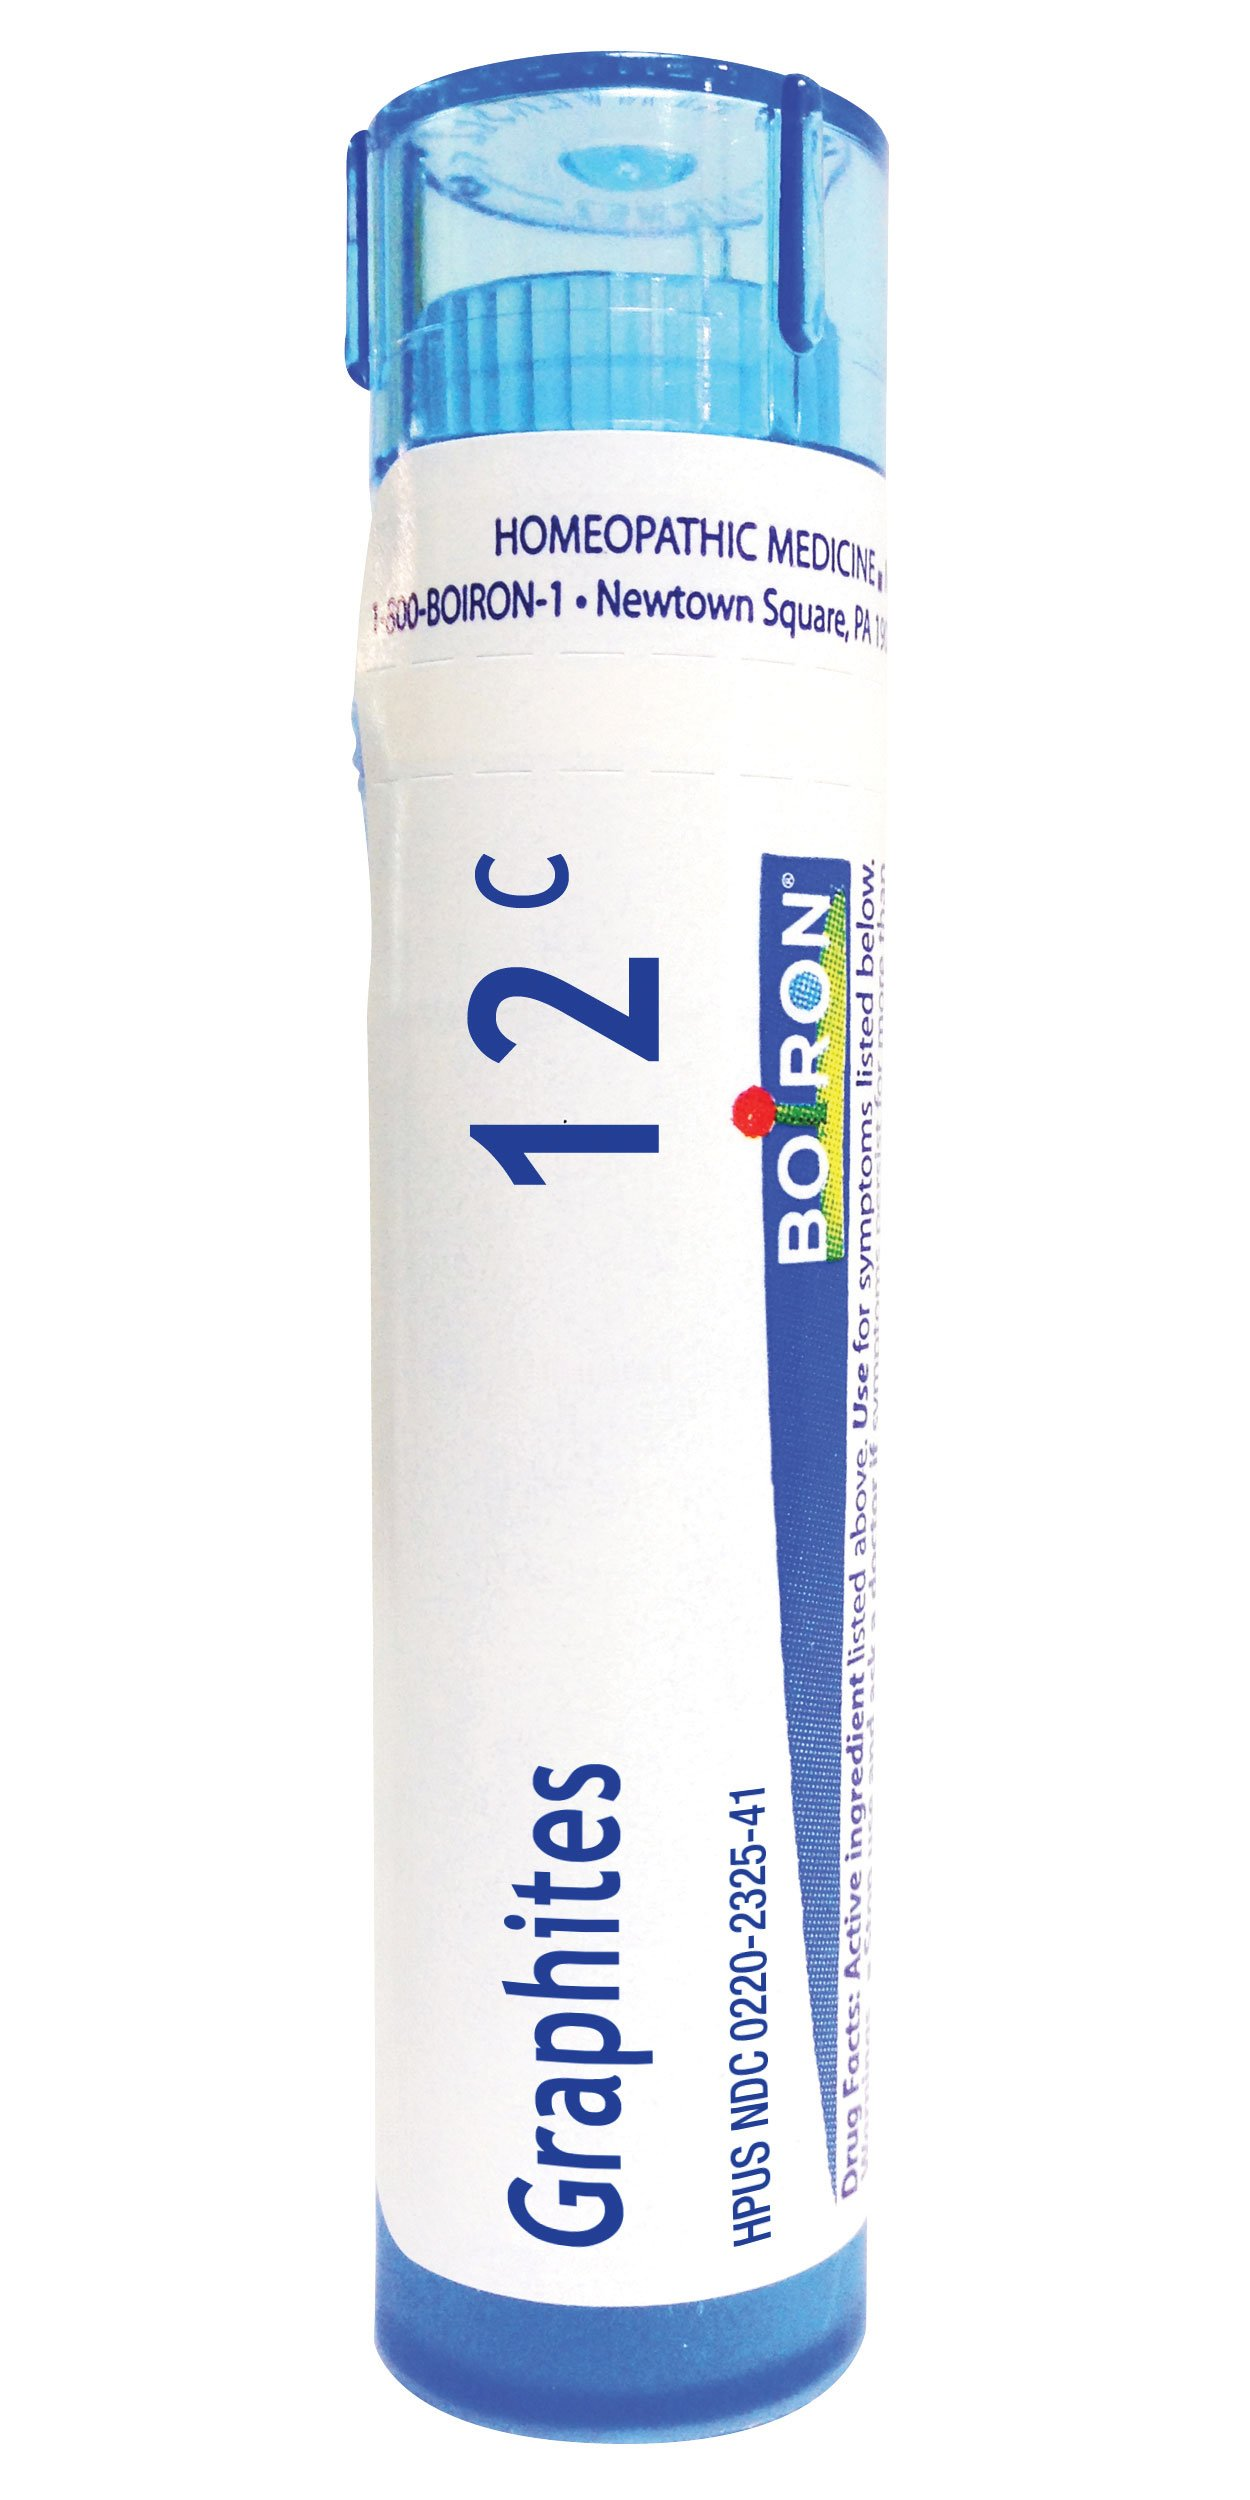 Boiron Graphites 12C, 80 Pellets, Homeopathic Medicine for Scars